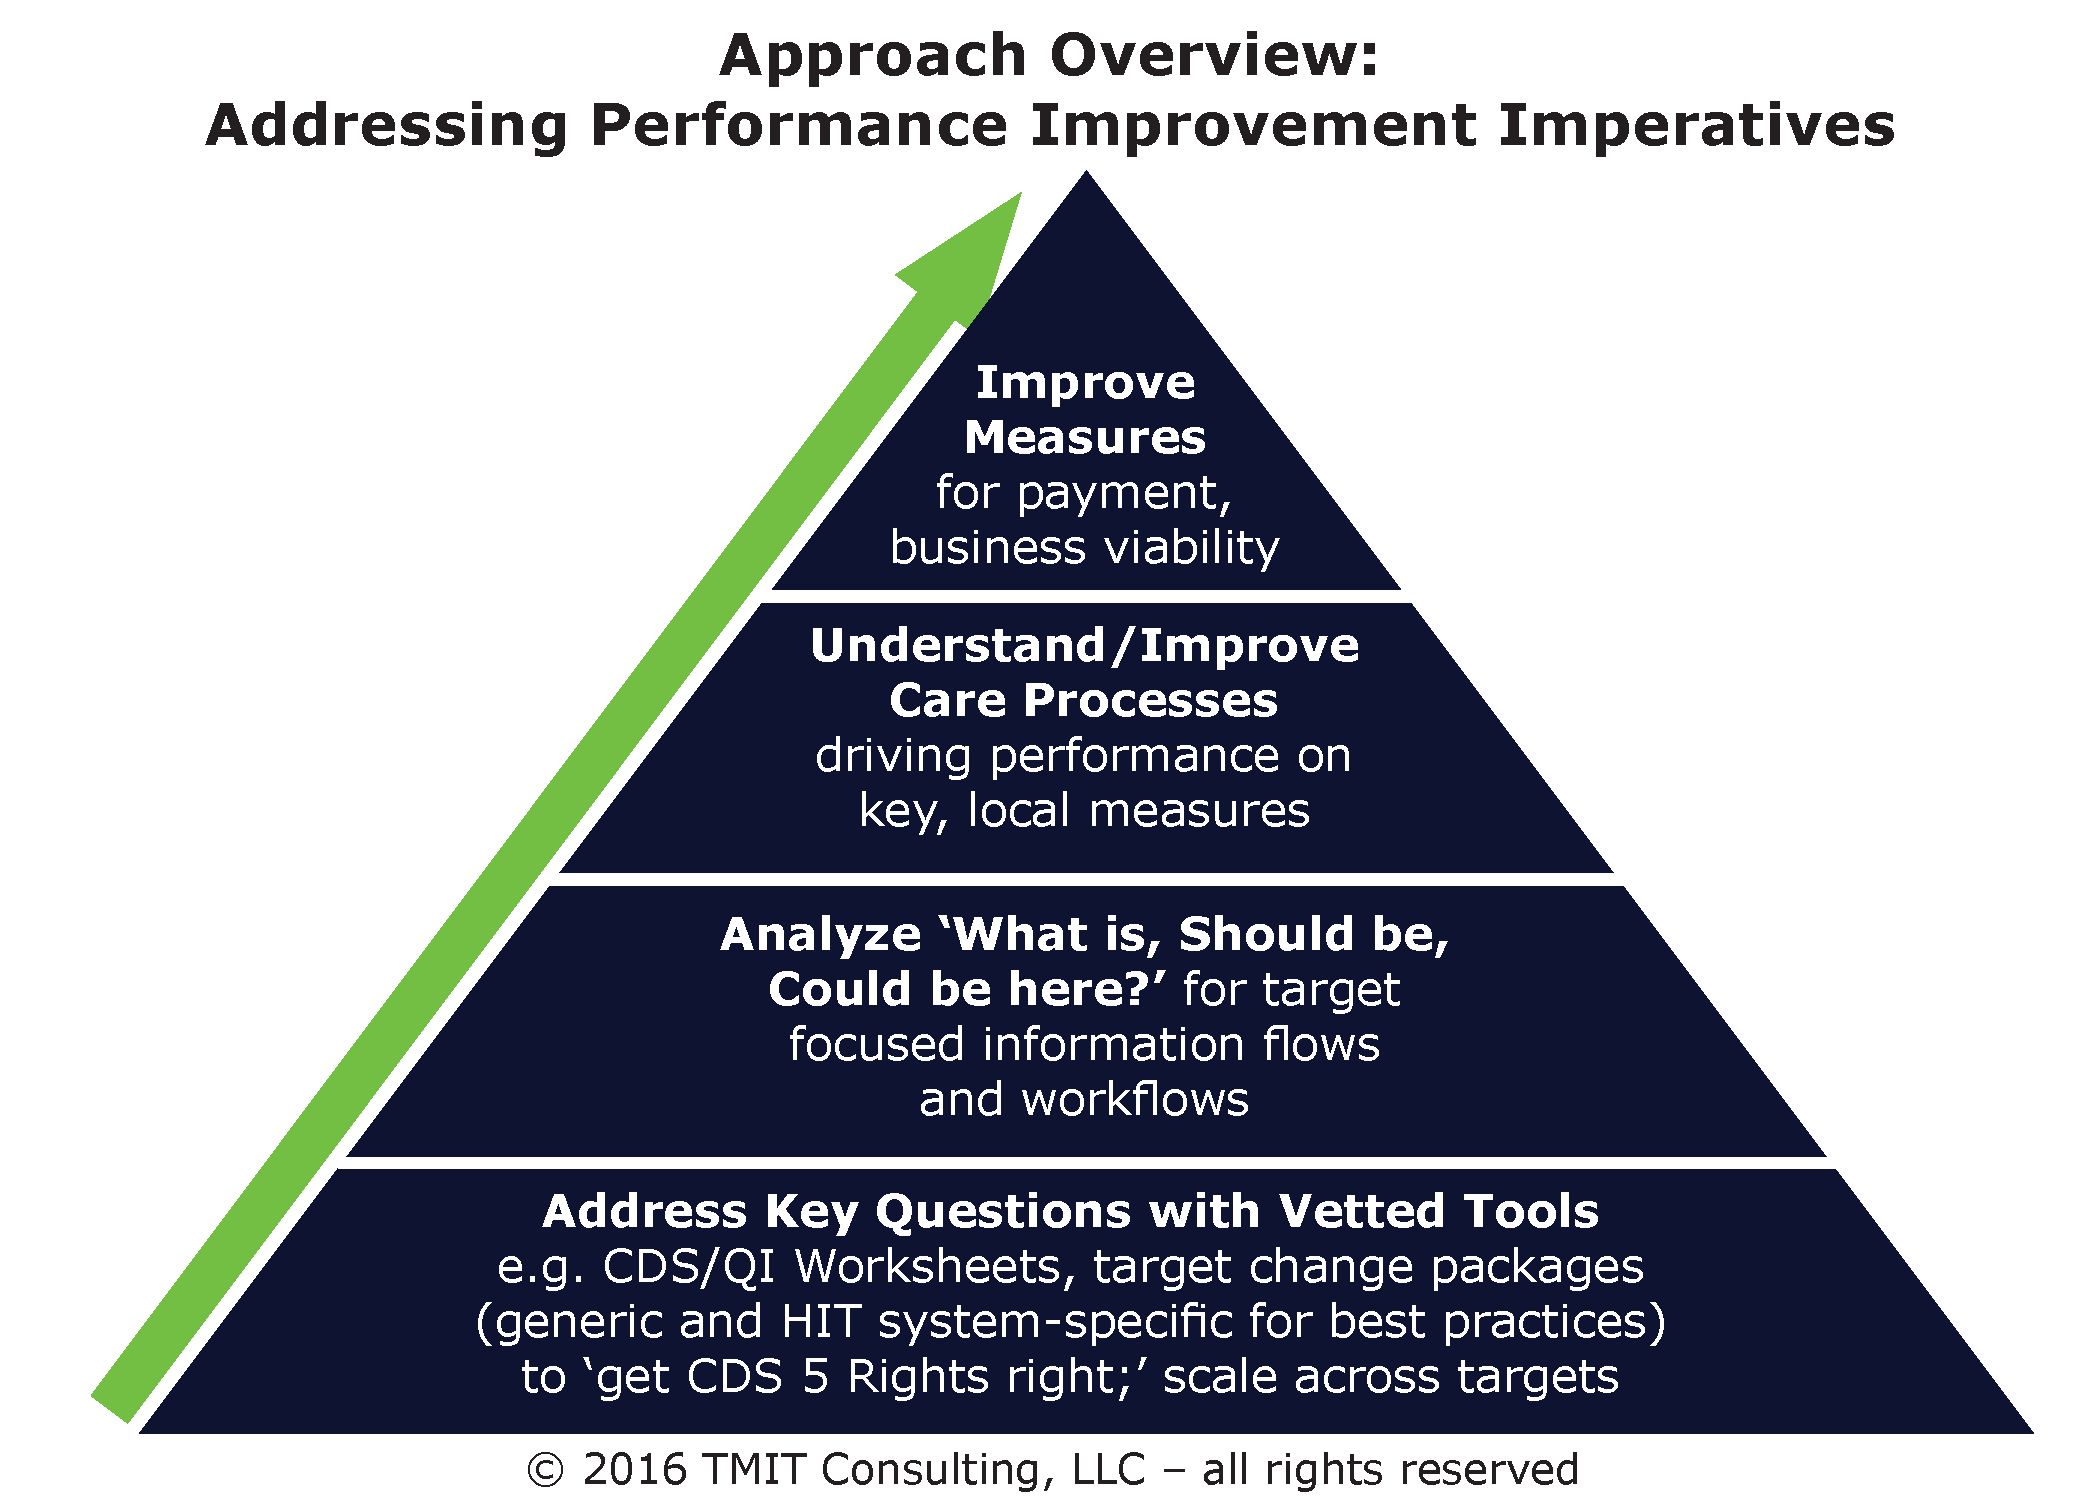 Approach Overview: Addressing Performance Improvement Imperatives